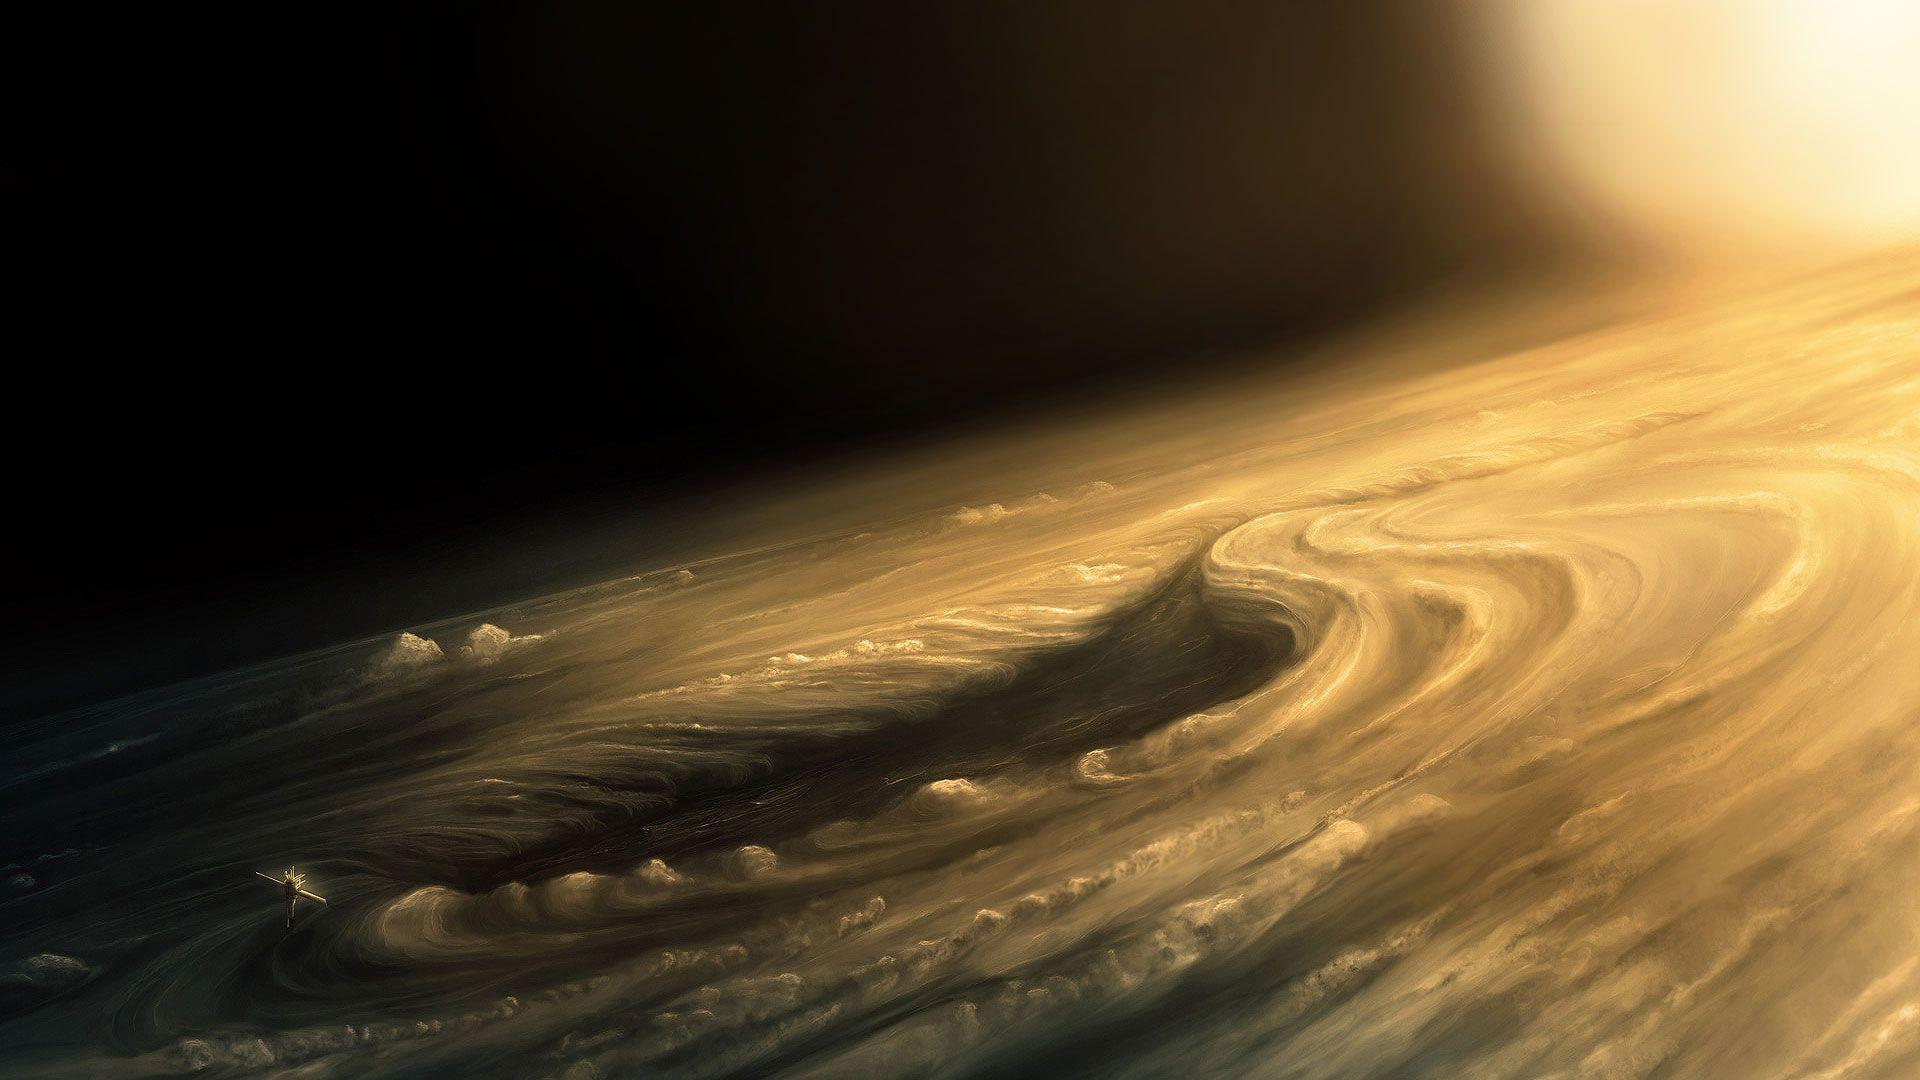 Jupiter Surface Painting Wallpapers Wide or HD